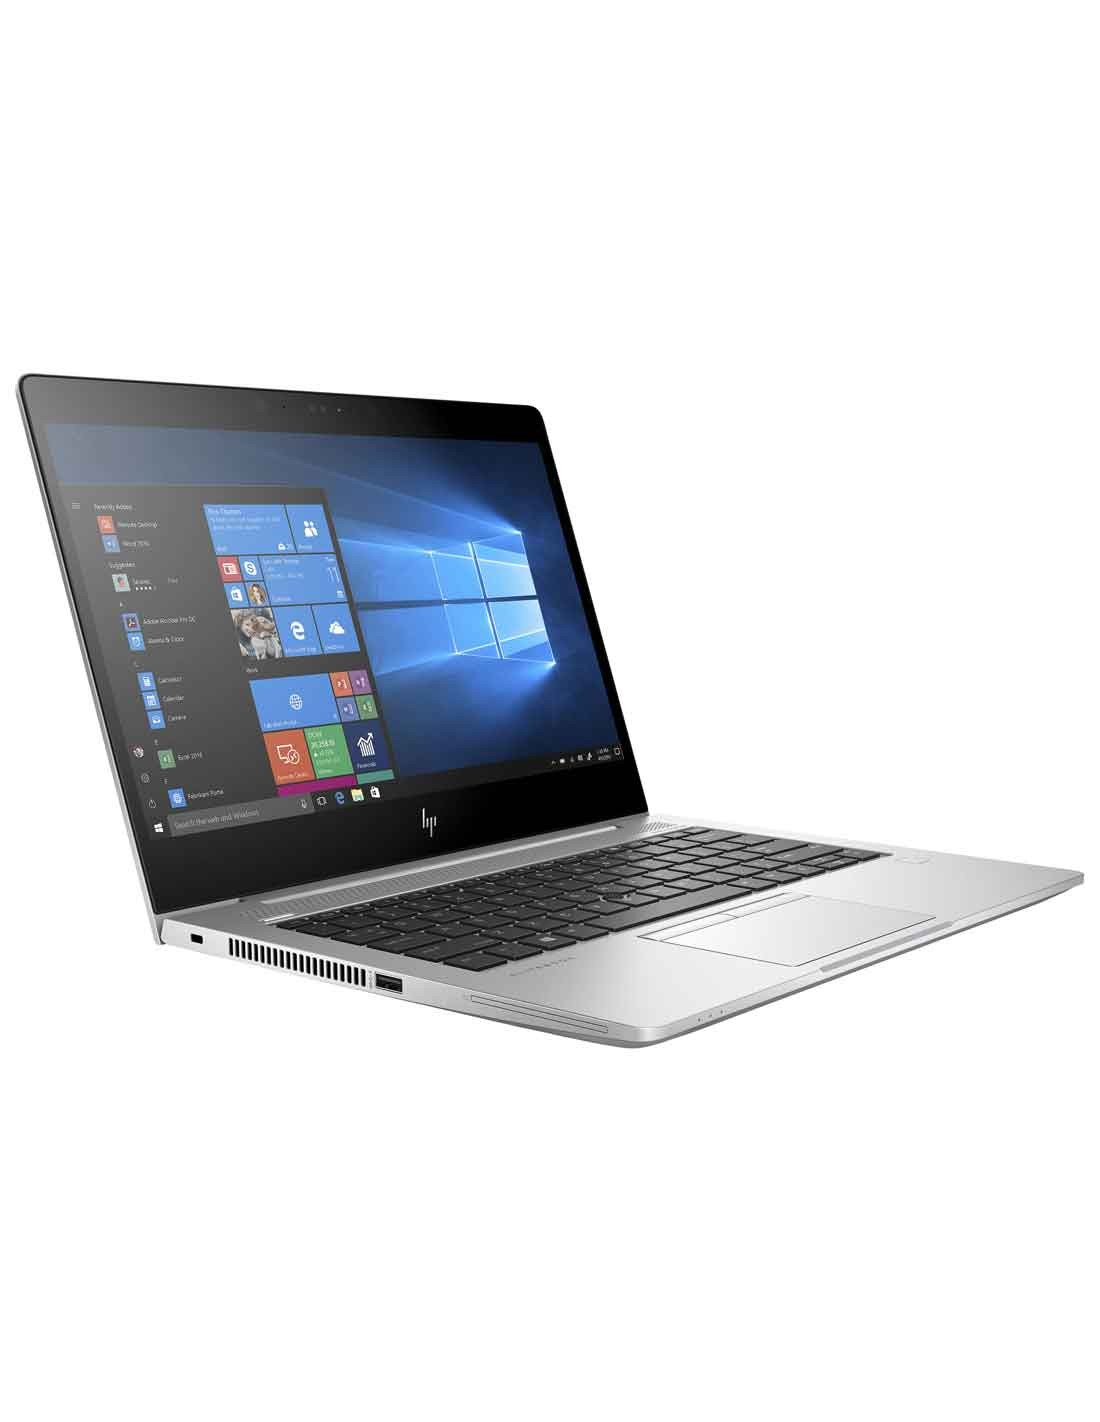 HP EliteBook 830 G5 Notebook i5 at the cheapest price in Dubai Laptop Store